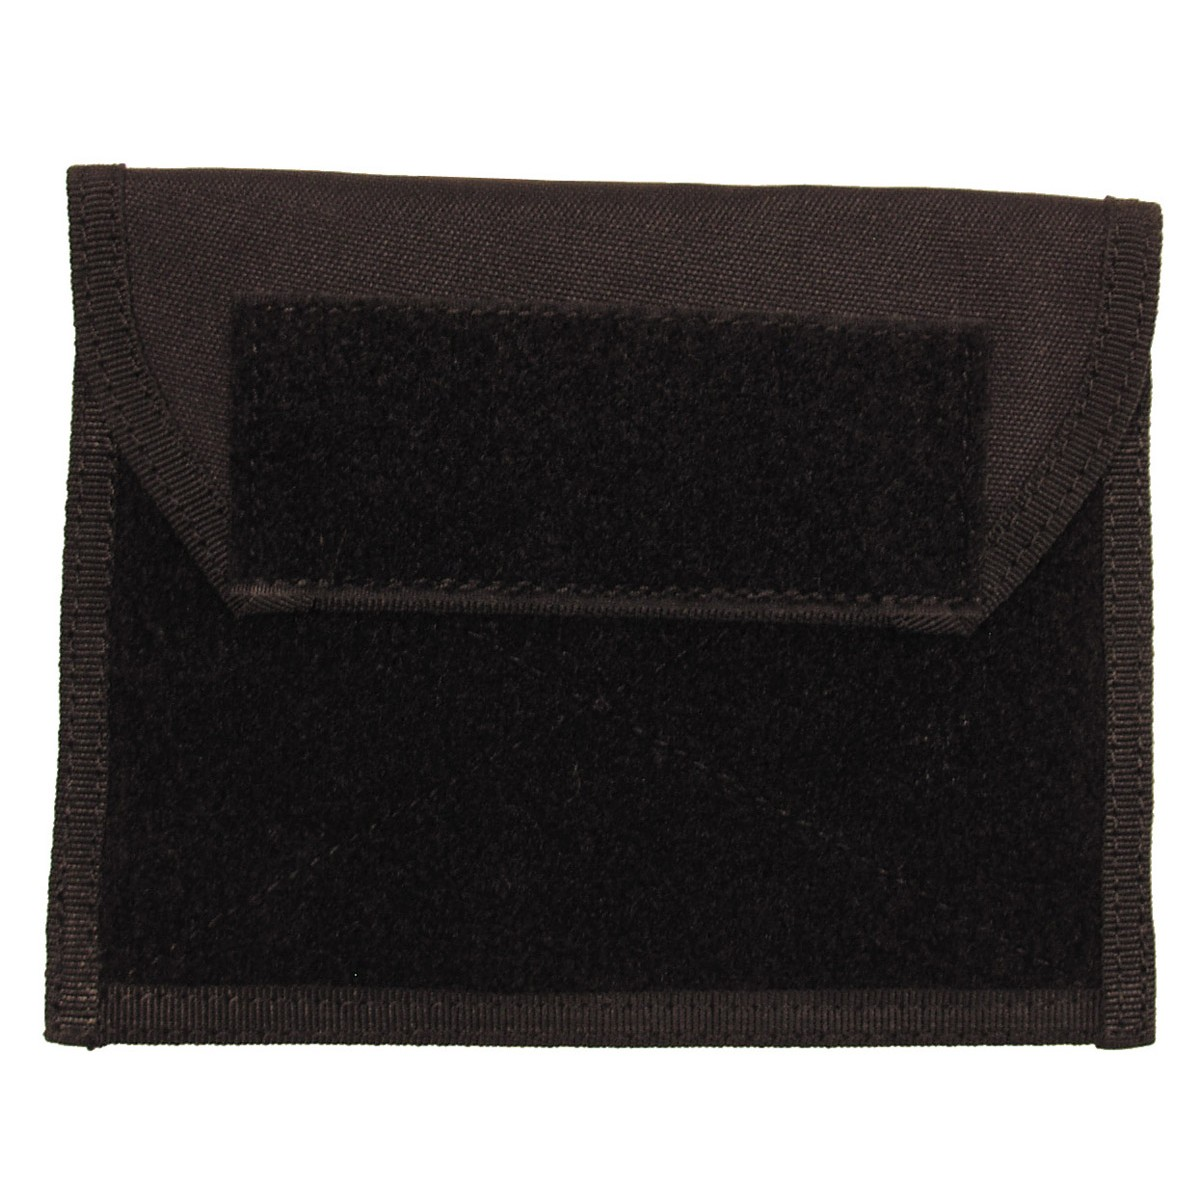 Tactical Admin Chest Molle Pouch w/ Velcro - Black